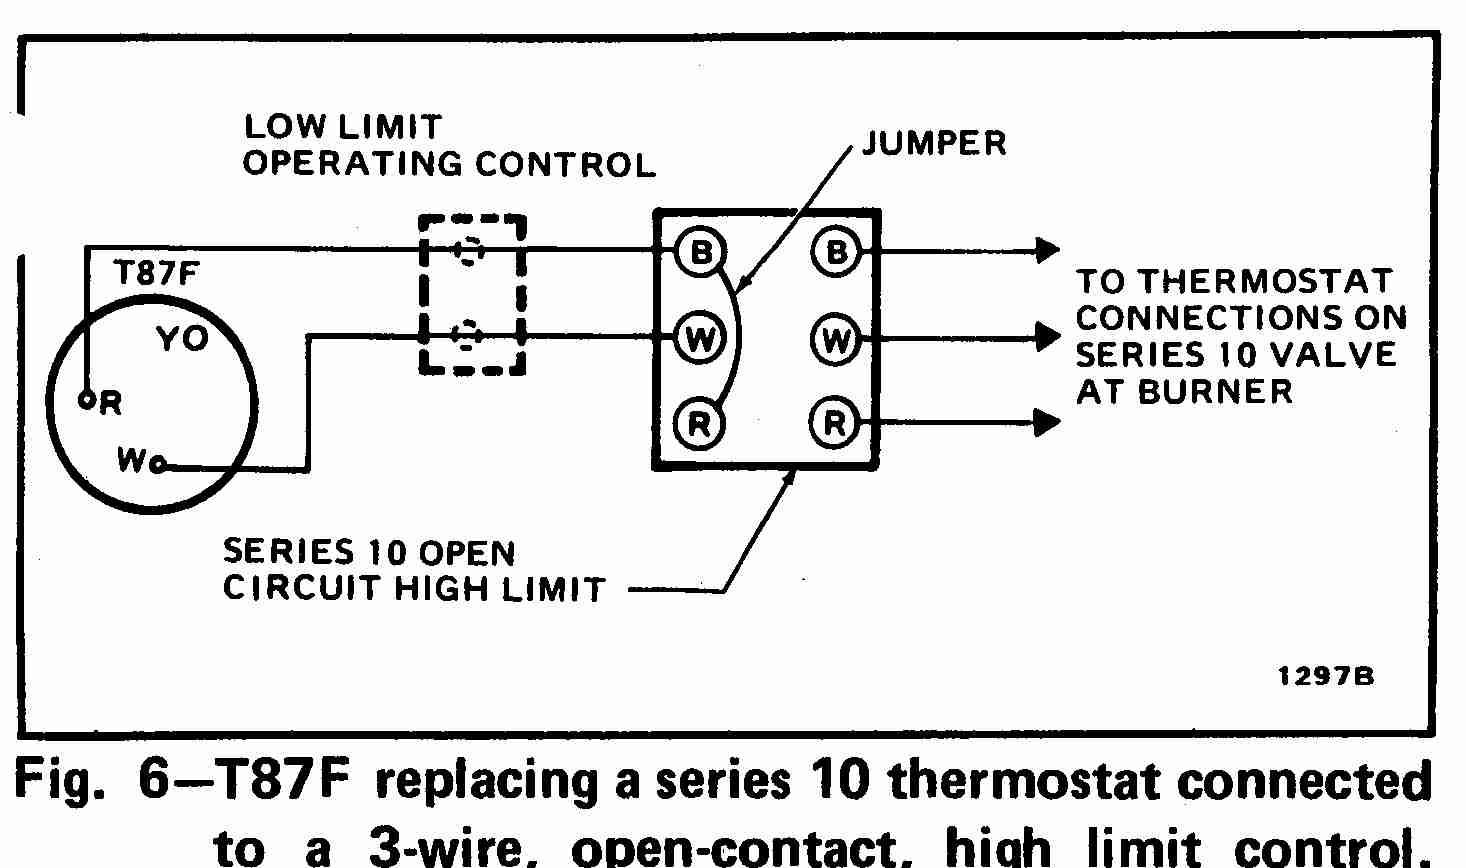 room thermostat wiring diagrams for hvac systems rh inspectapedia com wiring diagram thermostat heat pump trane wiring diagram thermostat